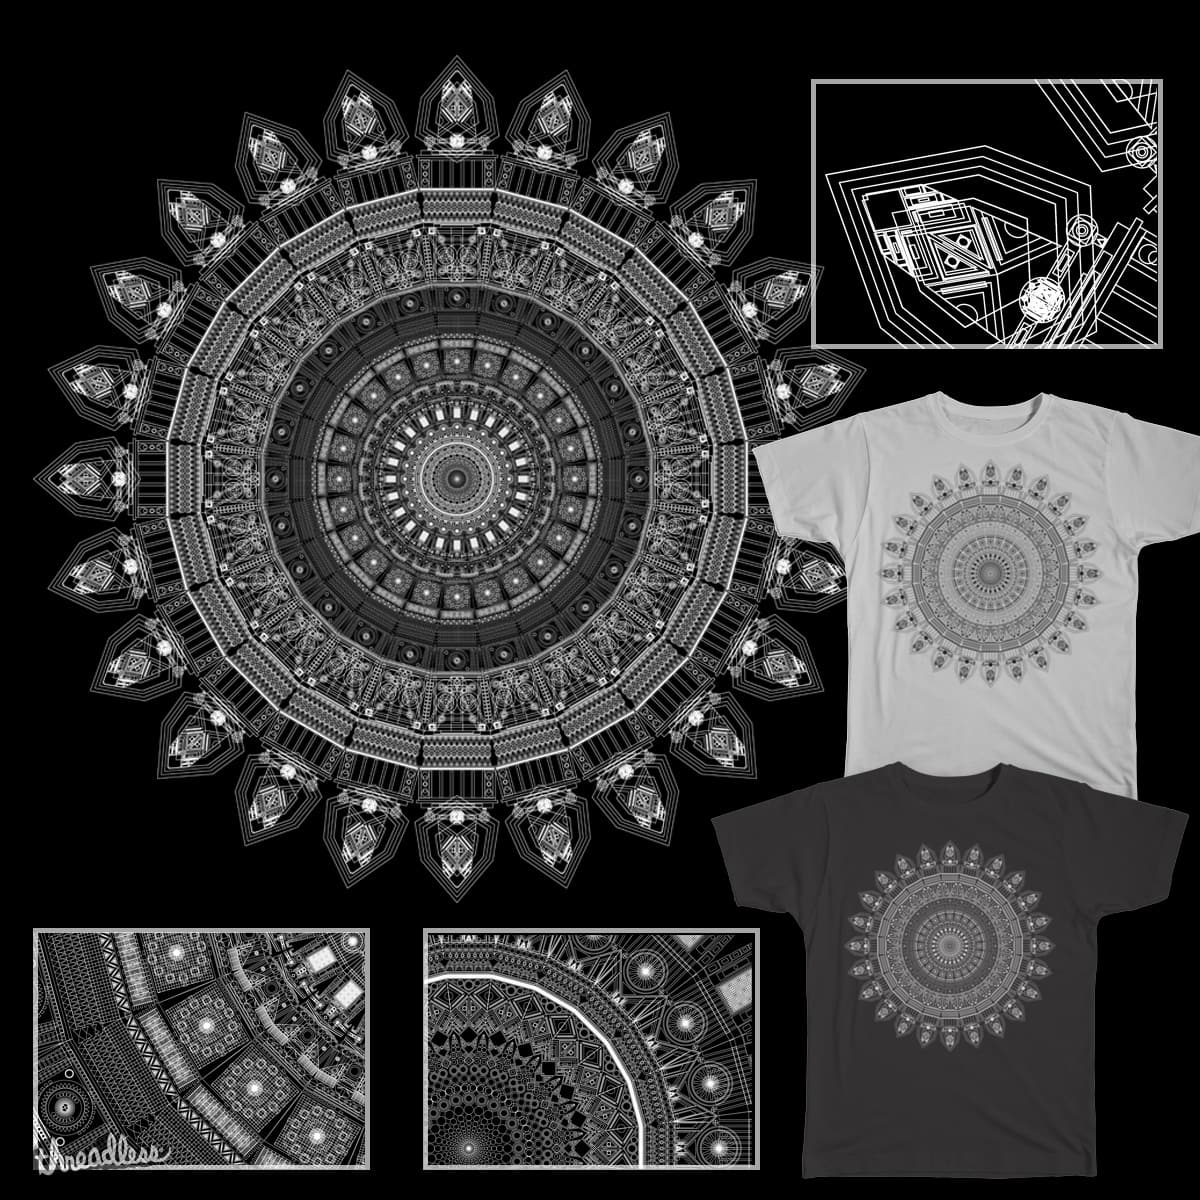 Mandala rose by bombo332 on Threadless